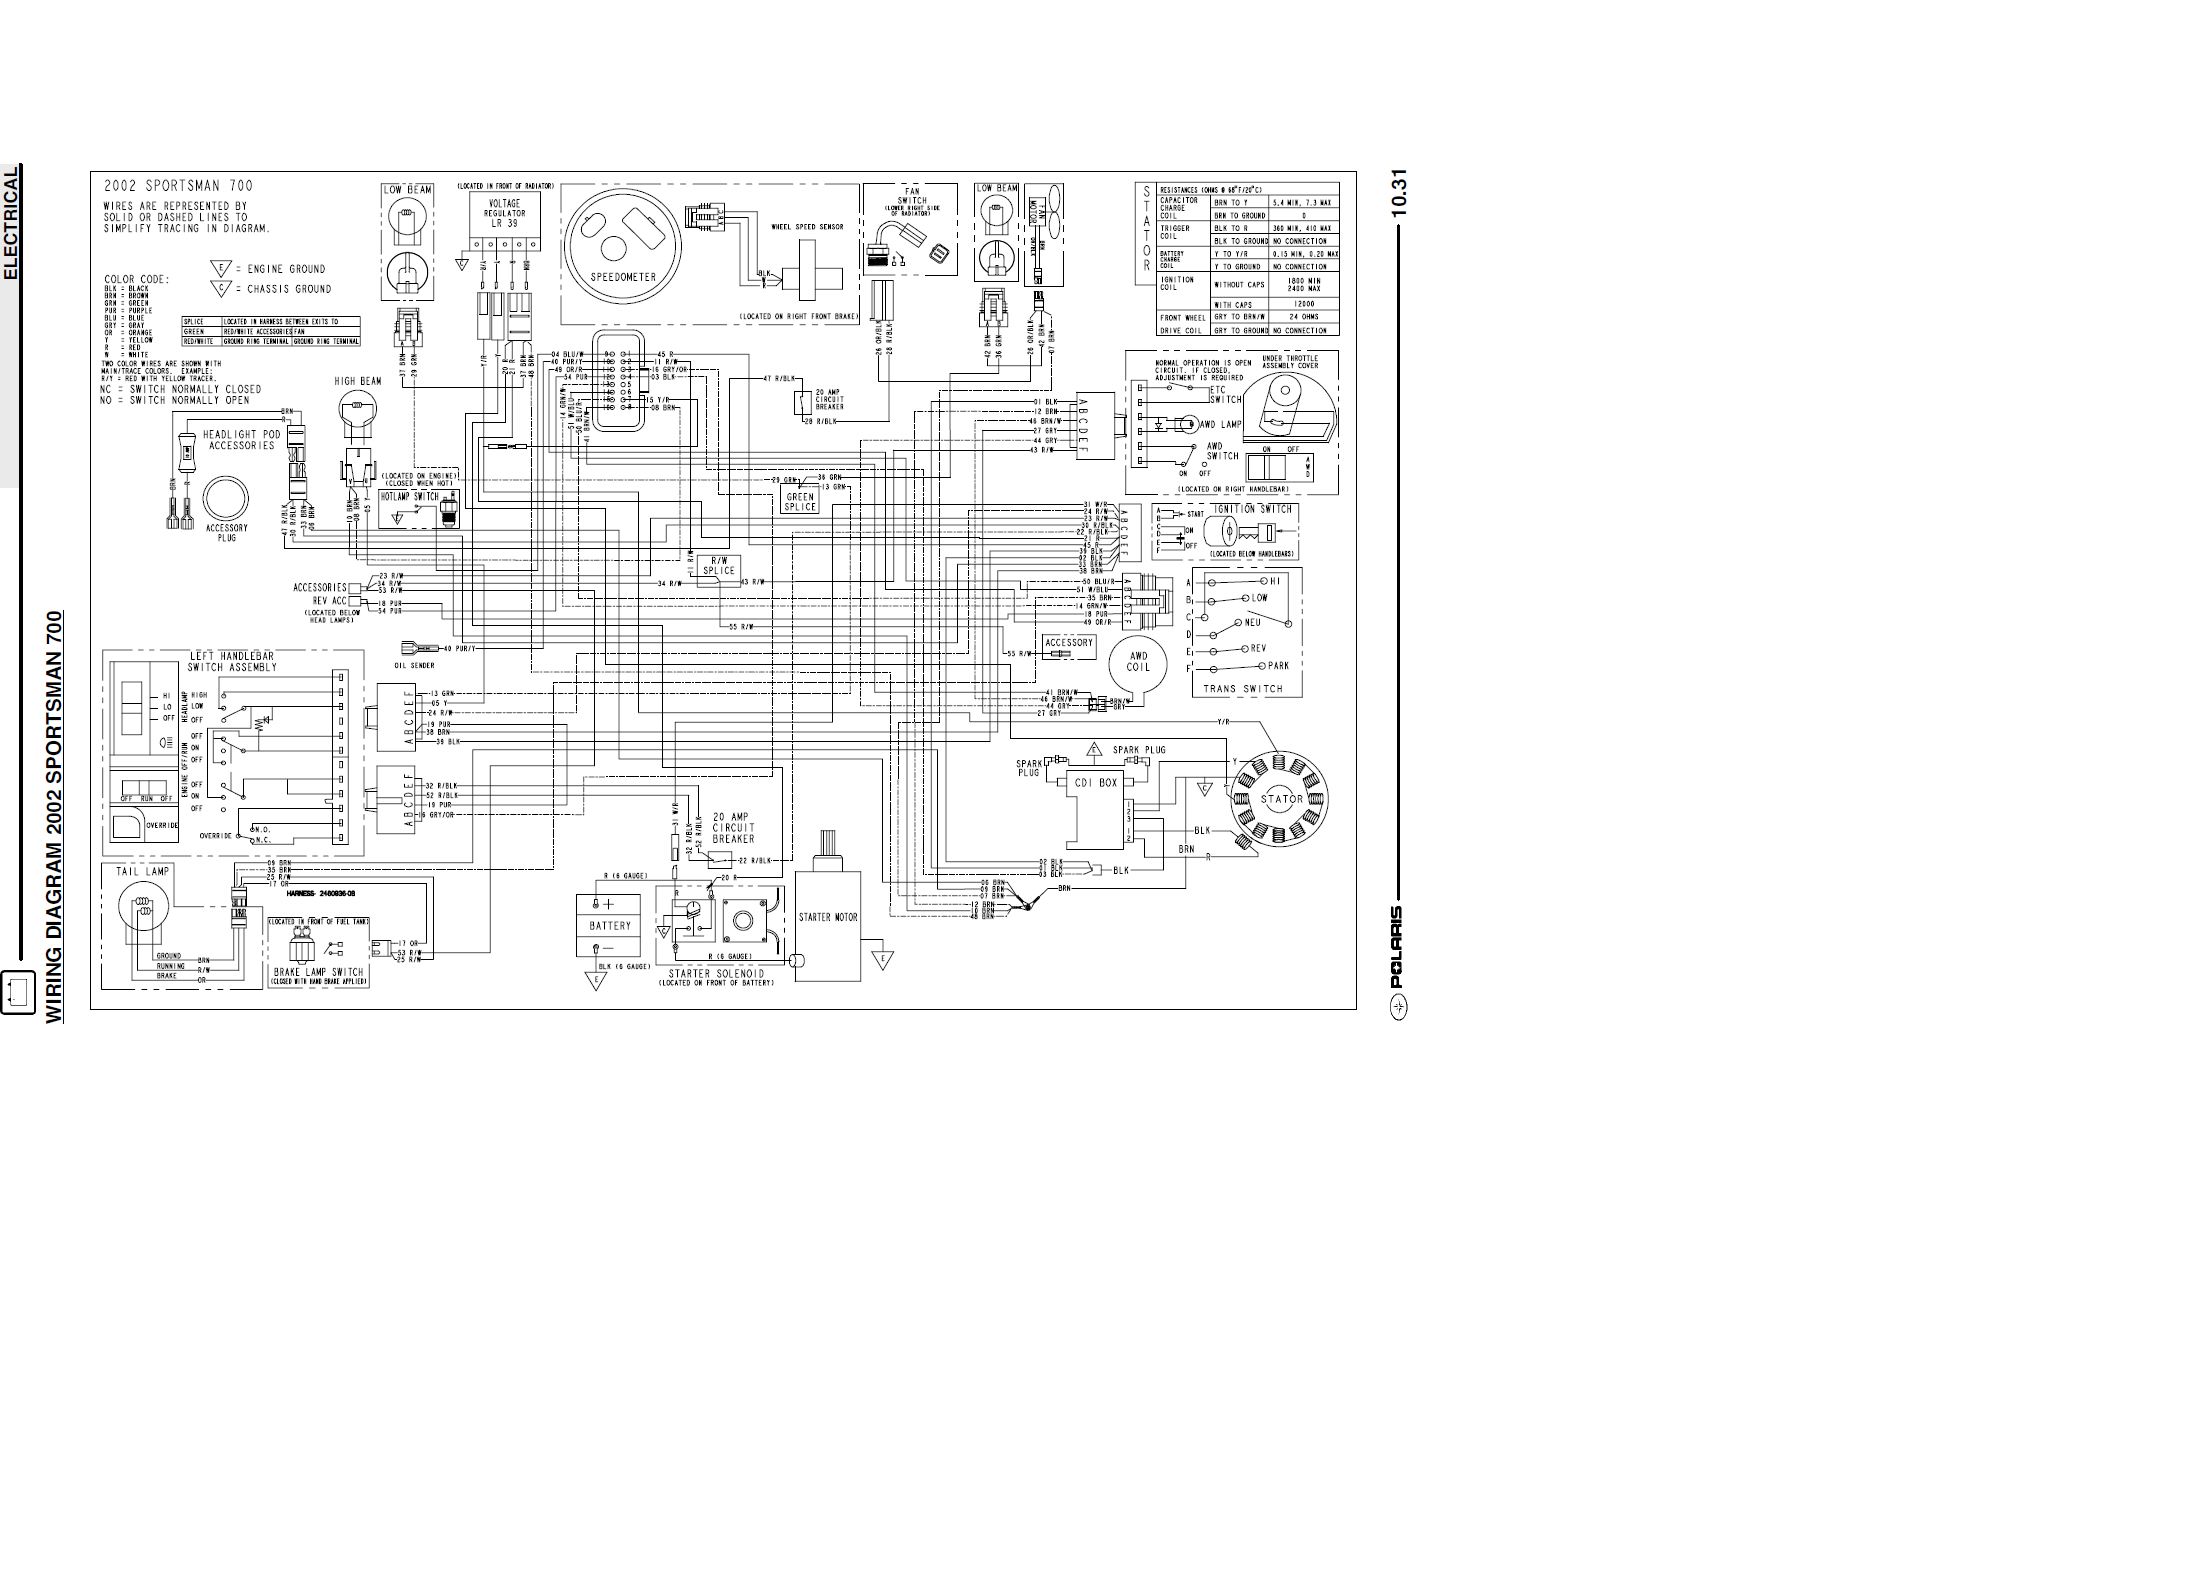 25373d1432944967 04 sportsman 700 no spark wiring diag 700 04 sportsman 700 no spark page 2 polaris atv forum polaris rzr 1000 wiring diagram at bayanpartner.co